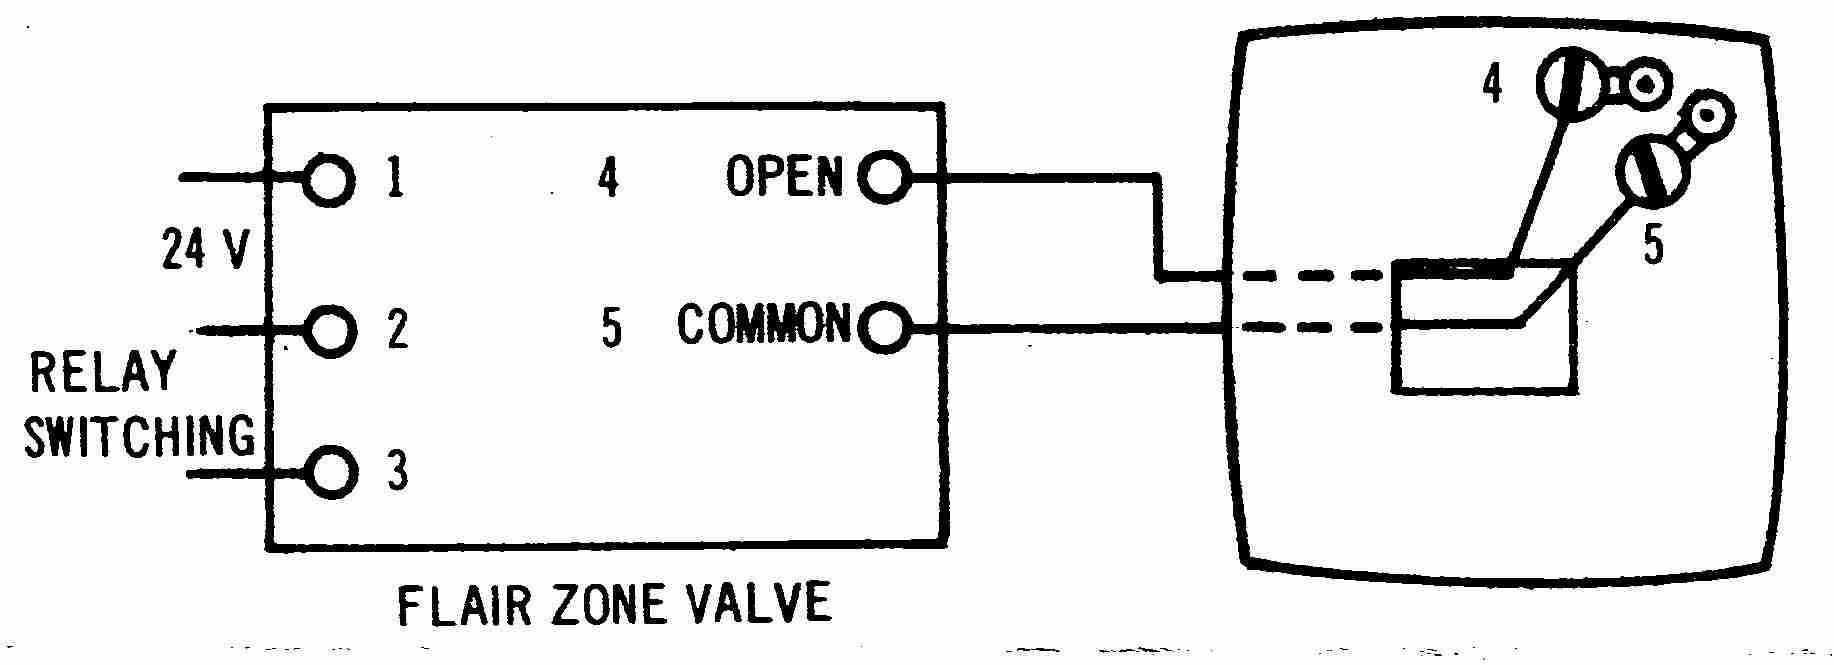 Flair2w_001_DJFc1 room thermostat wiring diagrams for hvac systems air conditioner relay wiring diagram at reclaimingppi.co